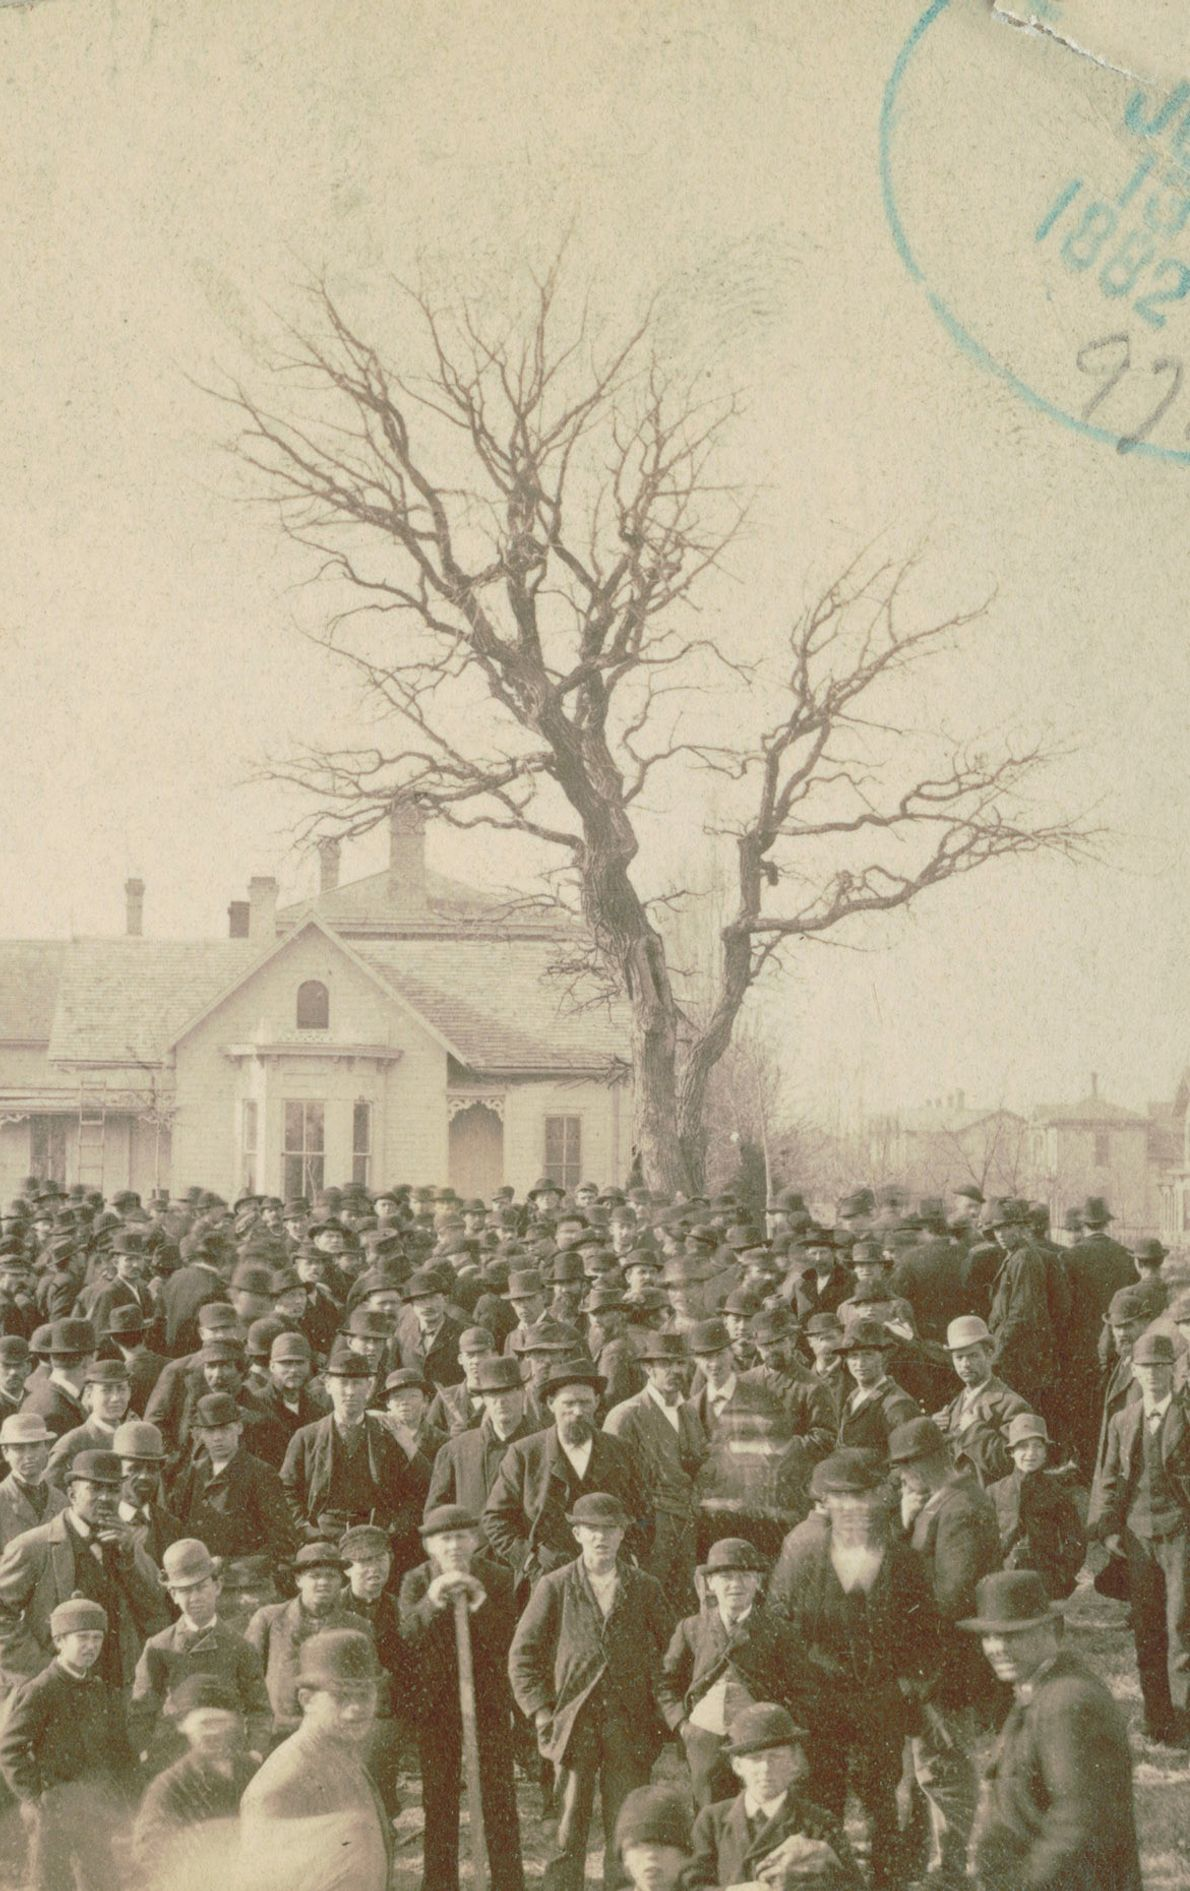 """Lynching of Frank MacManus, Minneapolis, MN., 1882  Artist Ken Gonzales-Day has been widely recognized for the """"Erased ..."""